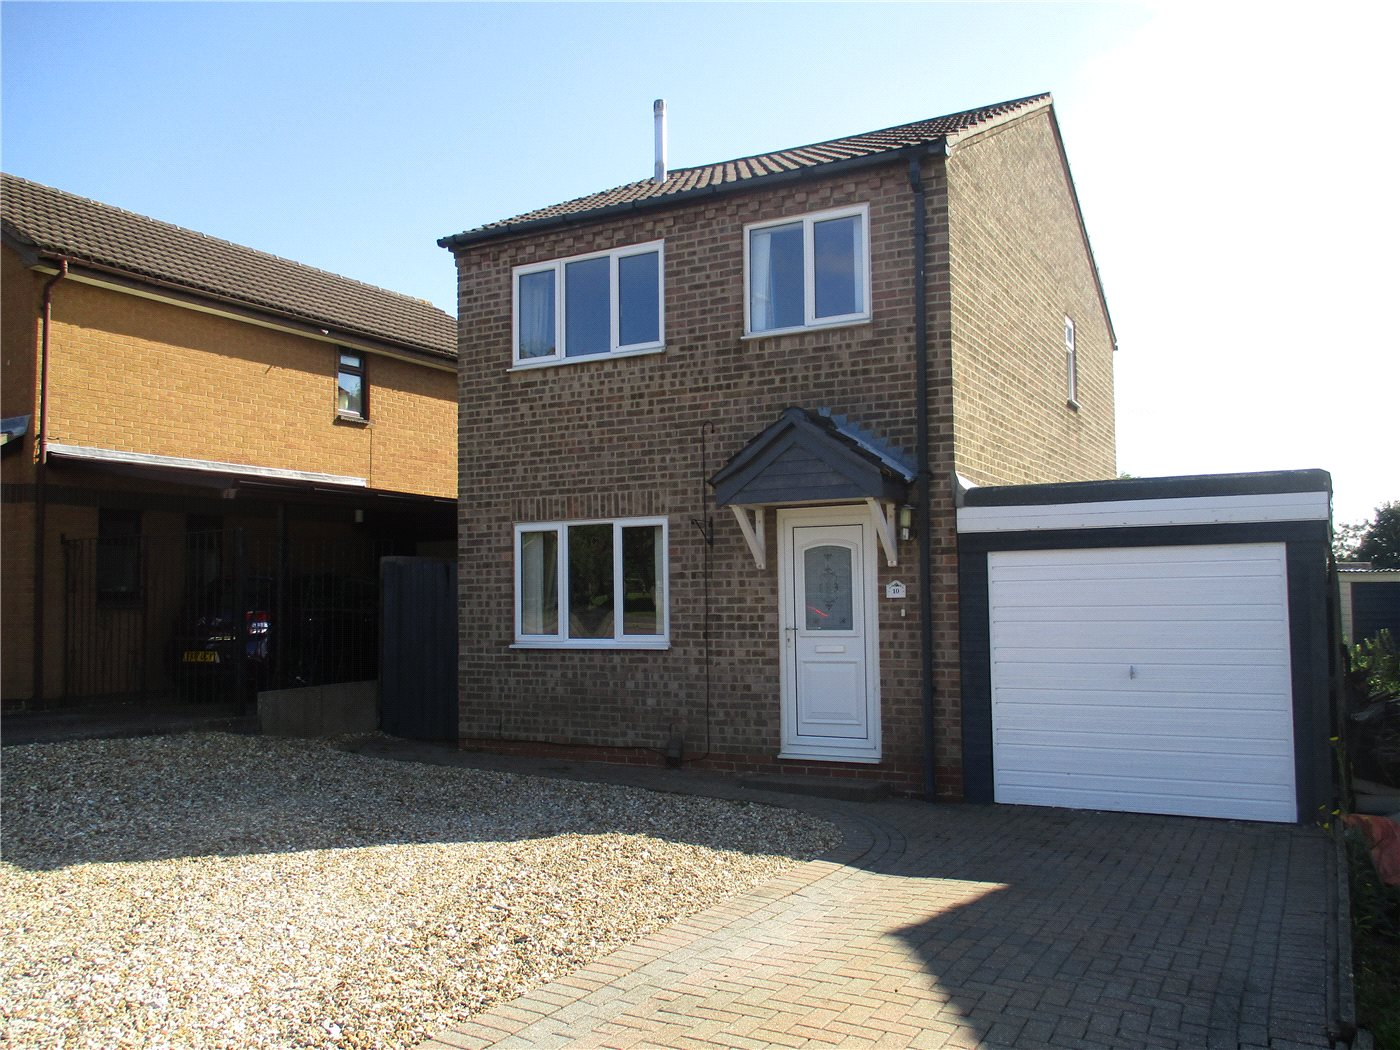 3 Bedrooms Detached House for sale in York Way, Grantham, NG31